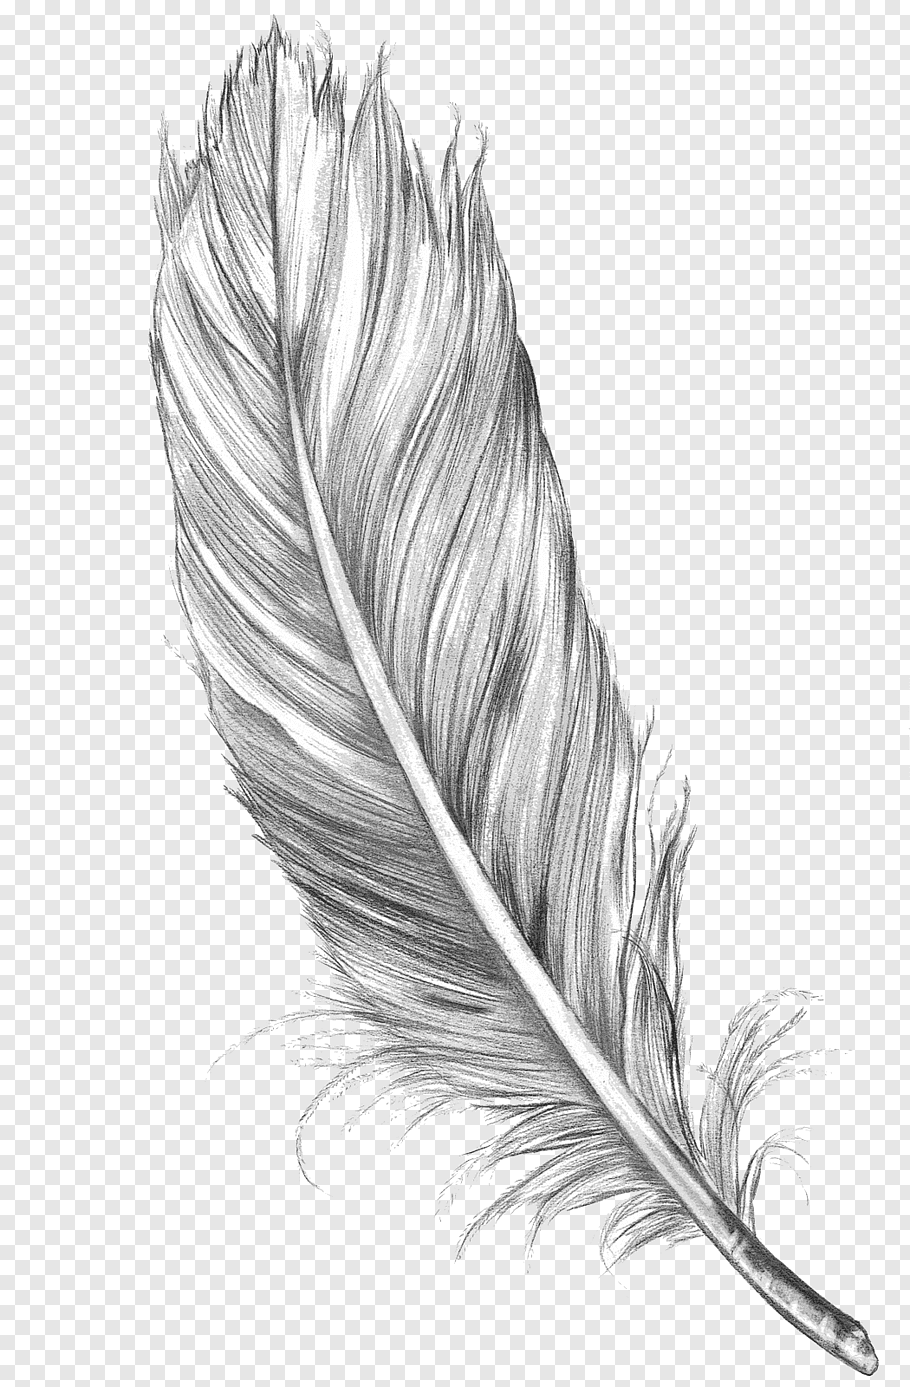 Gray feather sketch with black background, Drawing Feather.